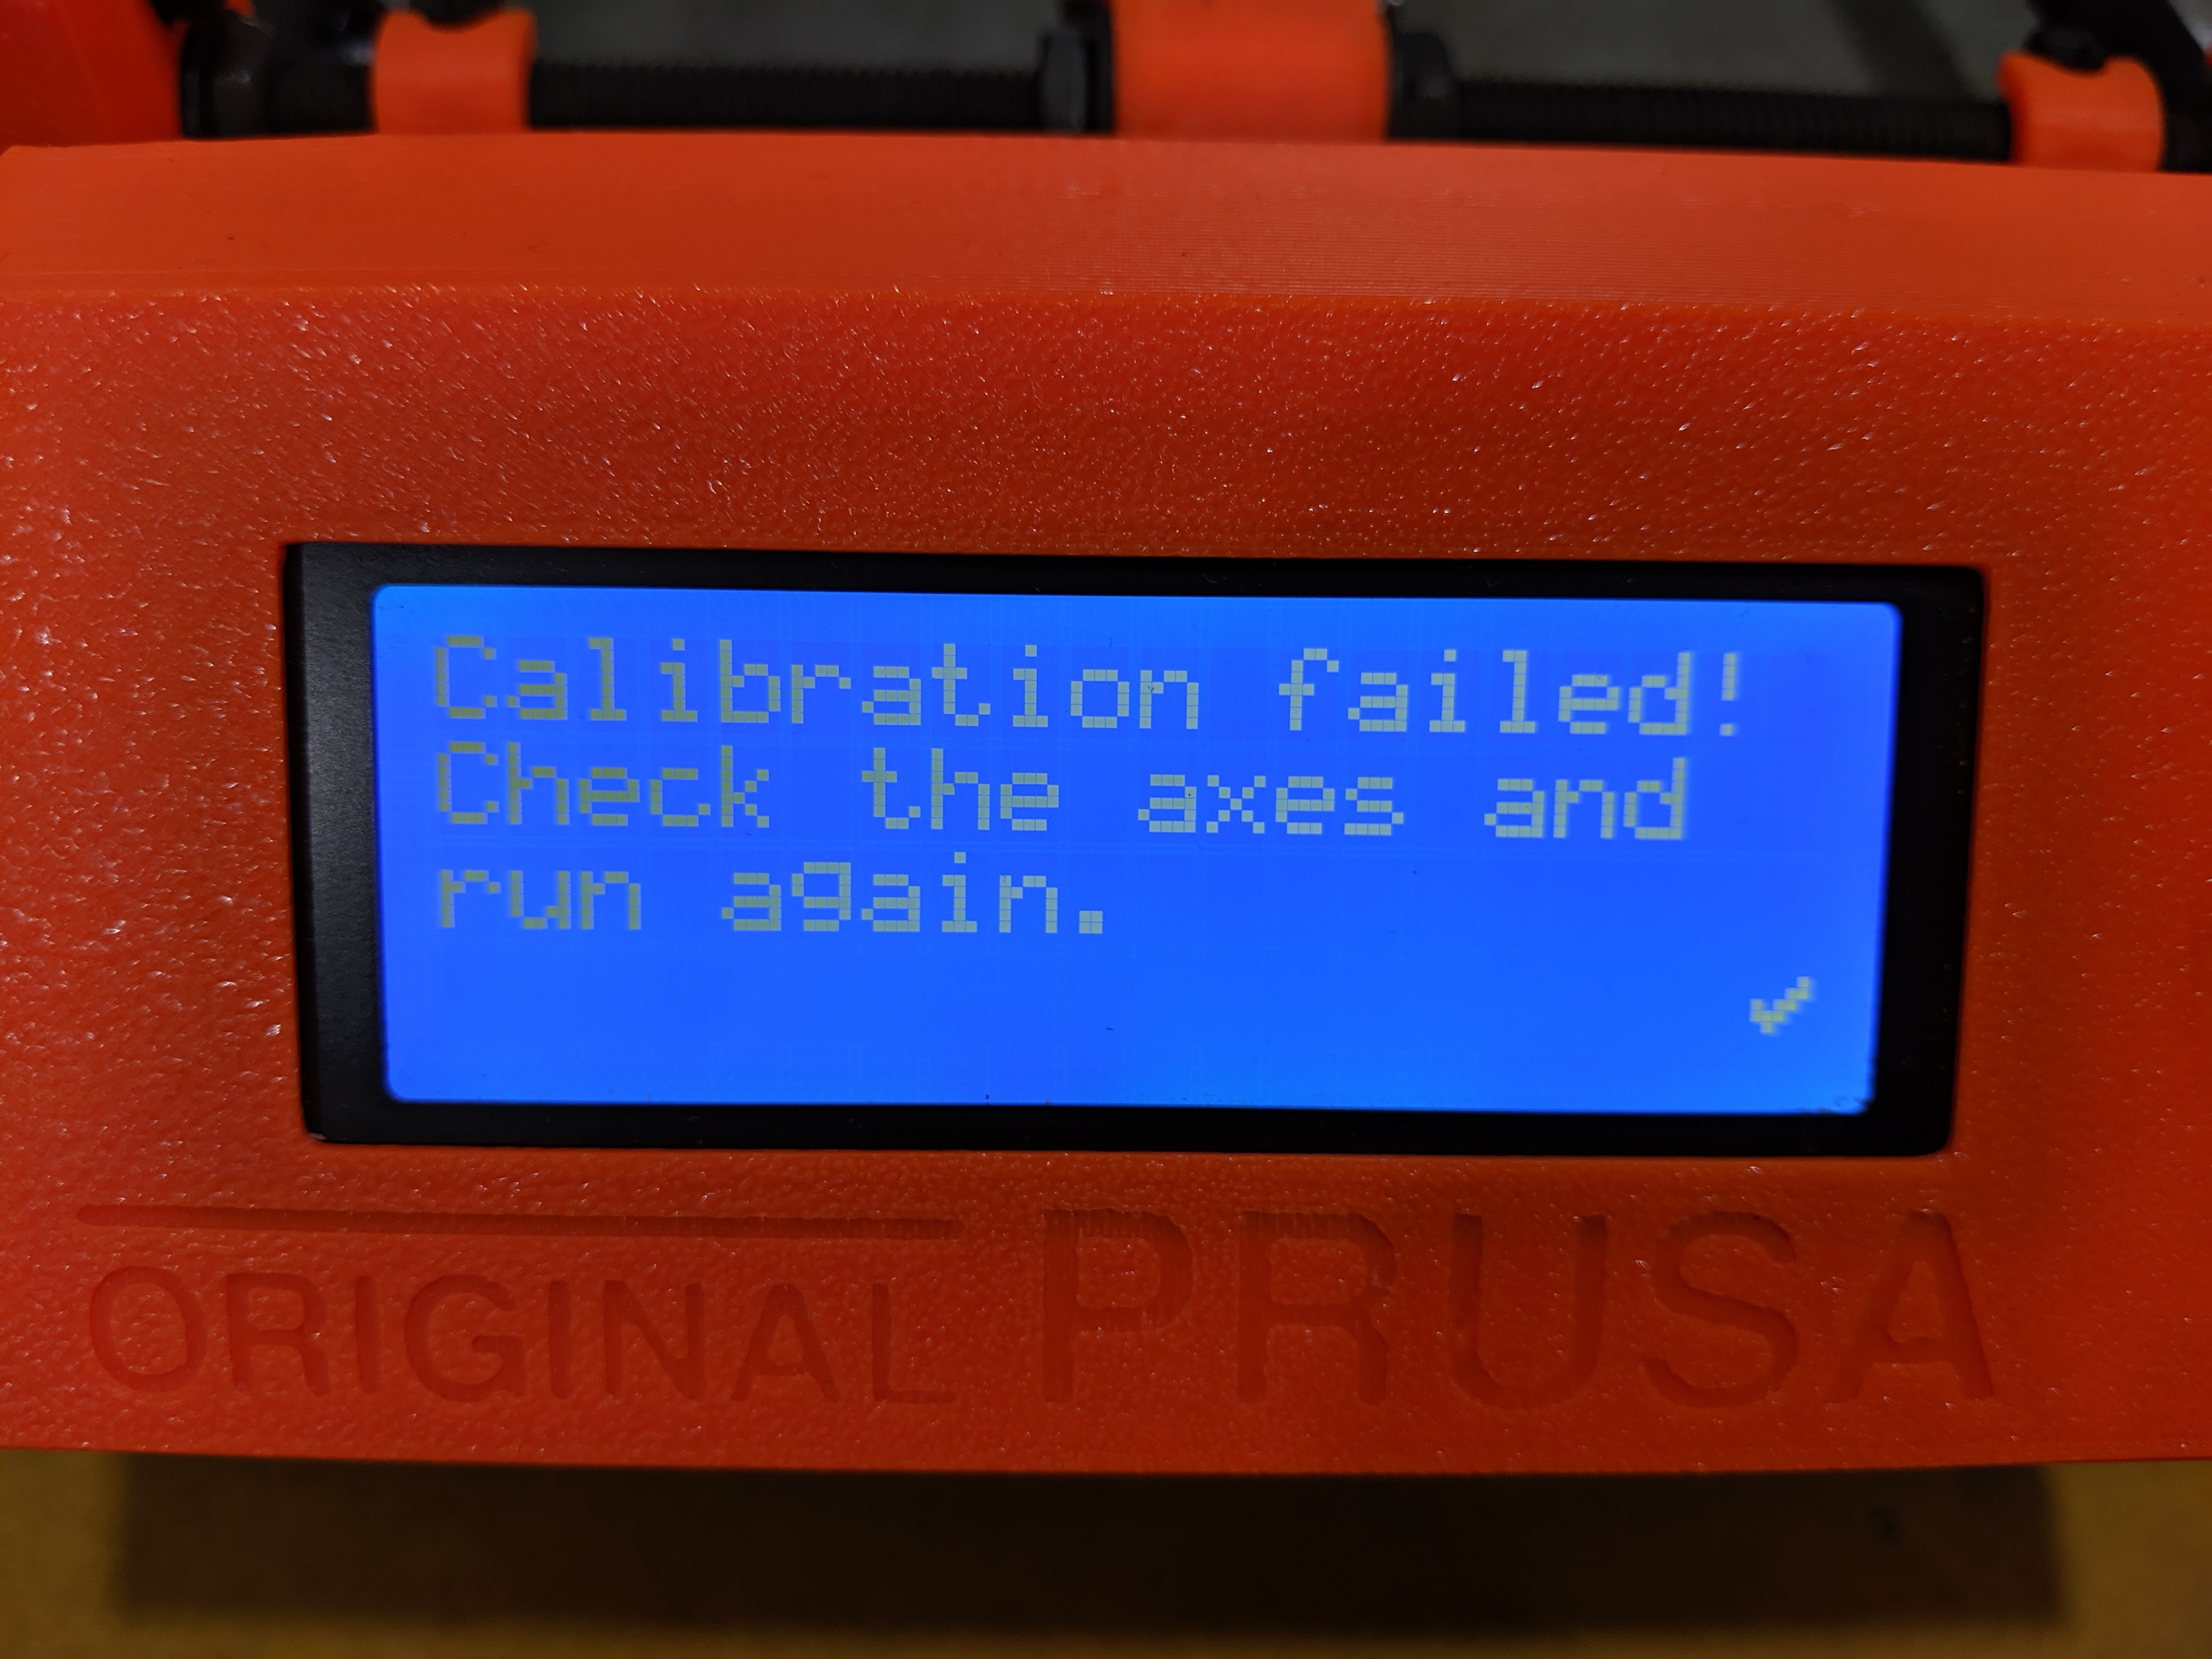 MK2 5S Firmware 3 7 1 - Z calibration issues · Issue #1830 · prusa3d